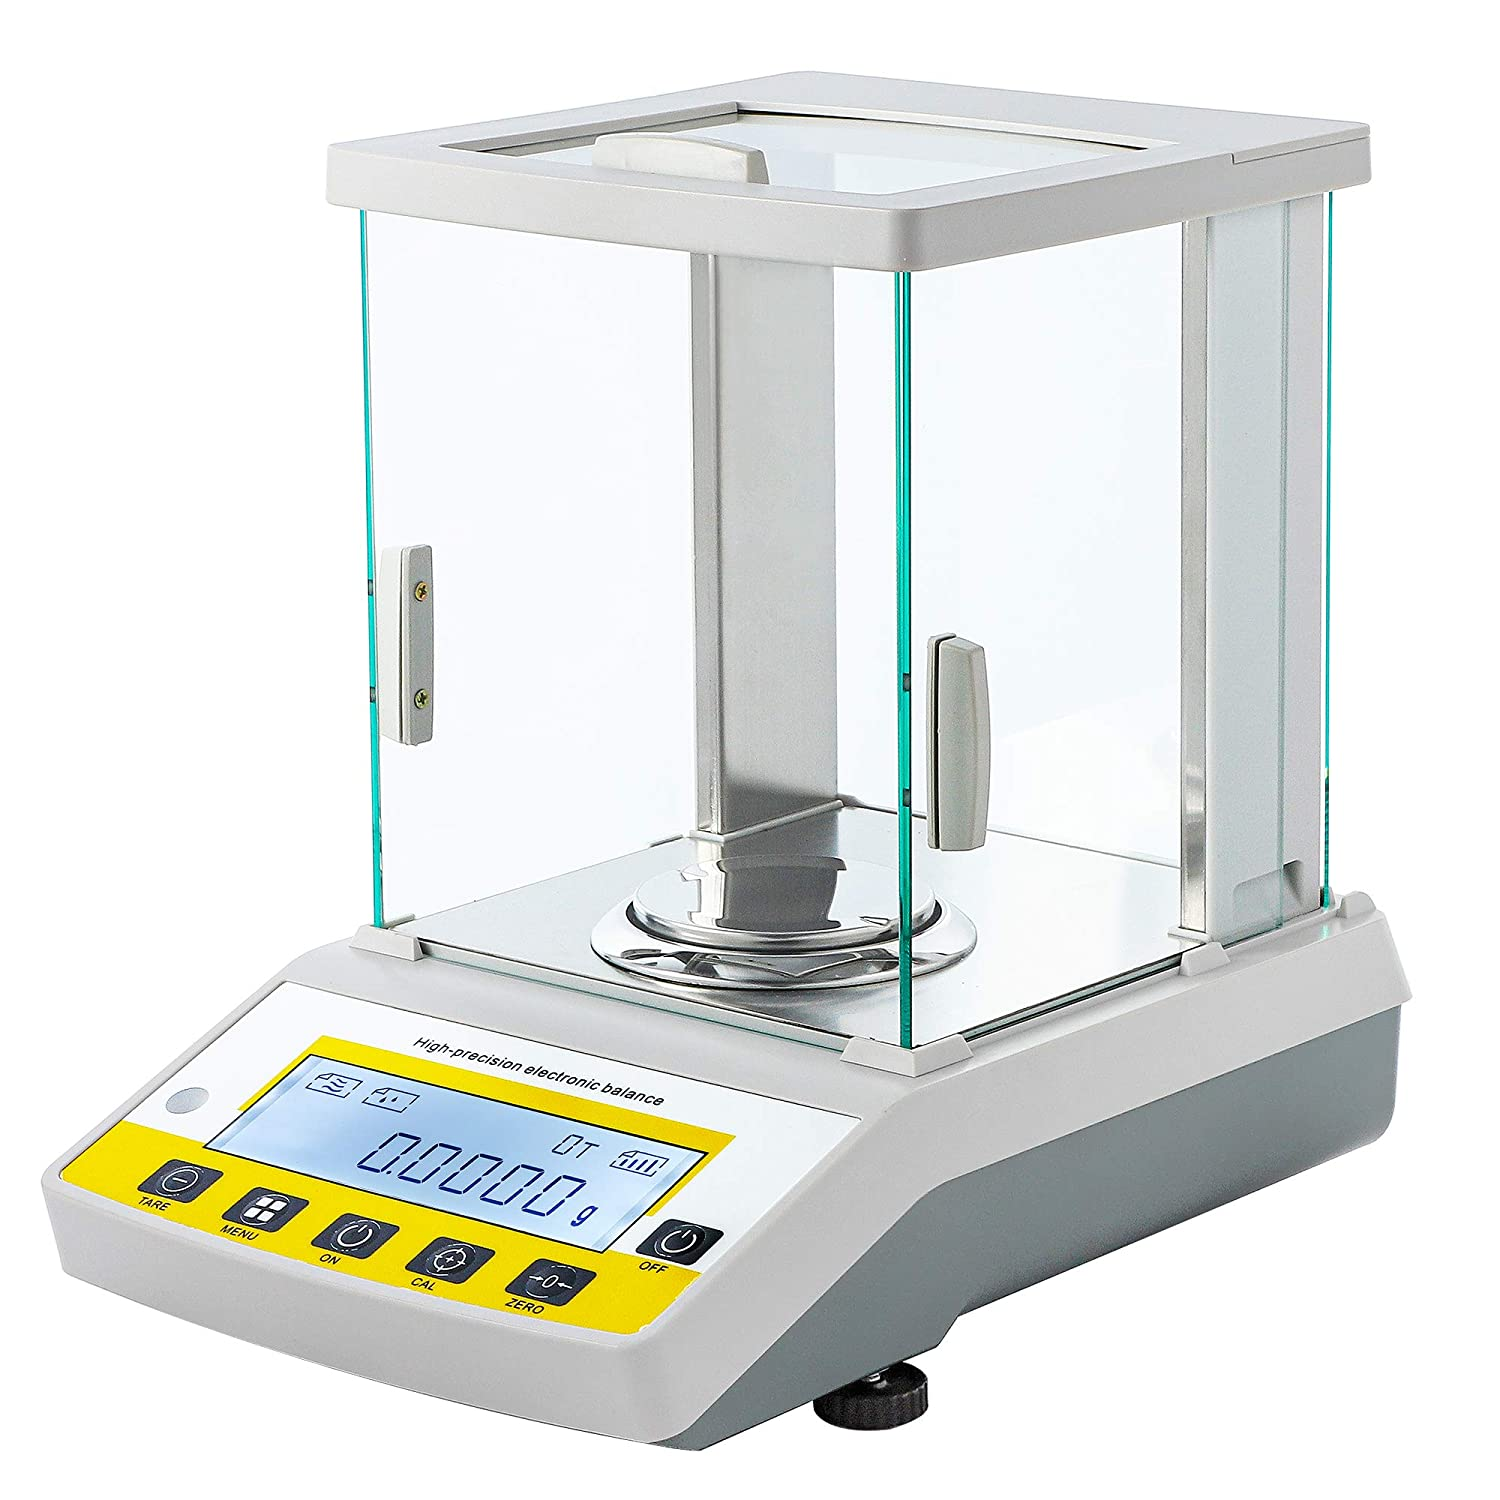 Direct sale of manufacturer CGOLDENWALL Precision Scale Max 87% OFF 0.1mg Balance Analytical Dig 0.0001g